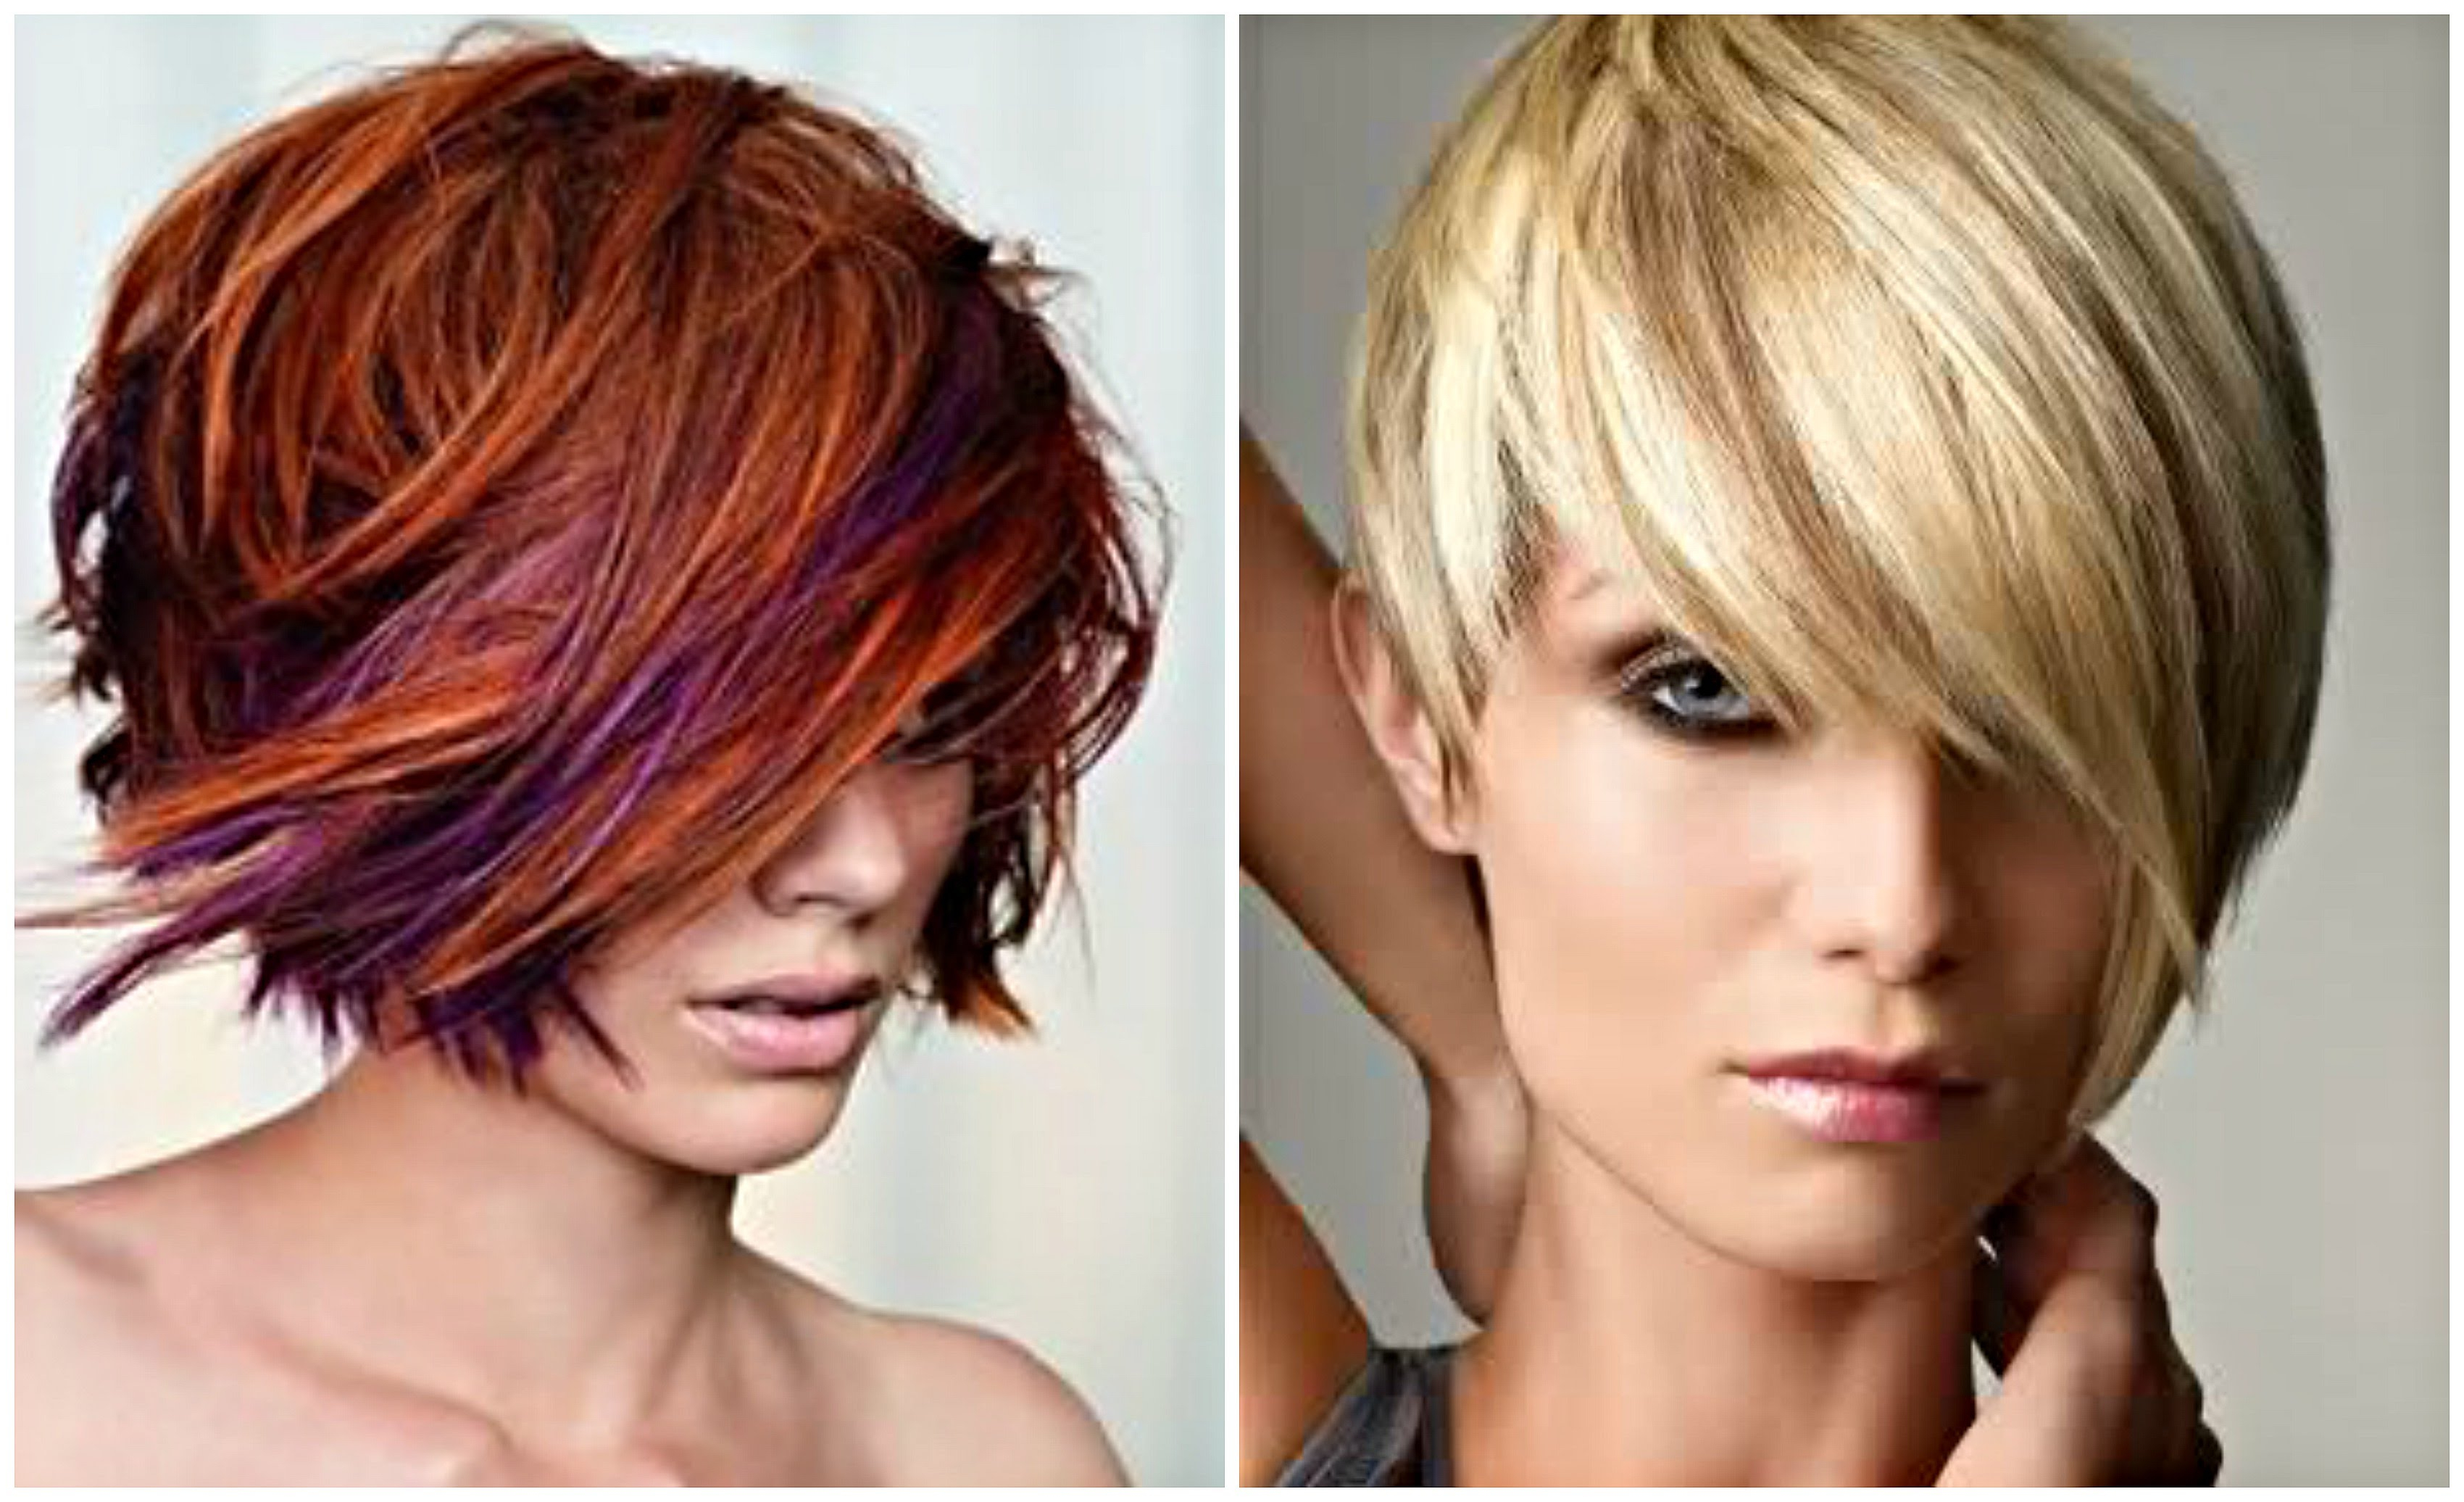 Short Hair Hairstyles For Fall 2018 – Hairstyles 2018 Intended For Fall Short Hairstyles (View 13 of 25)